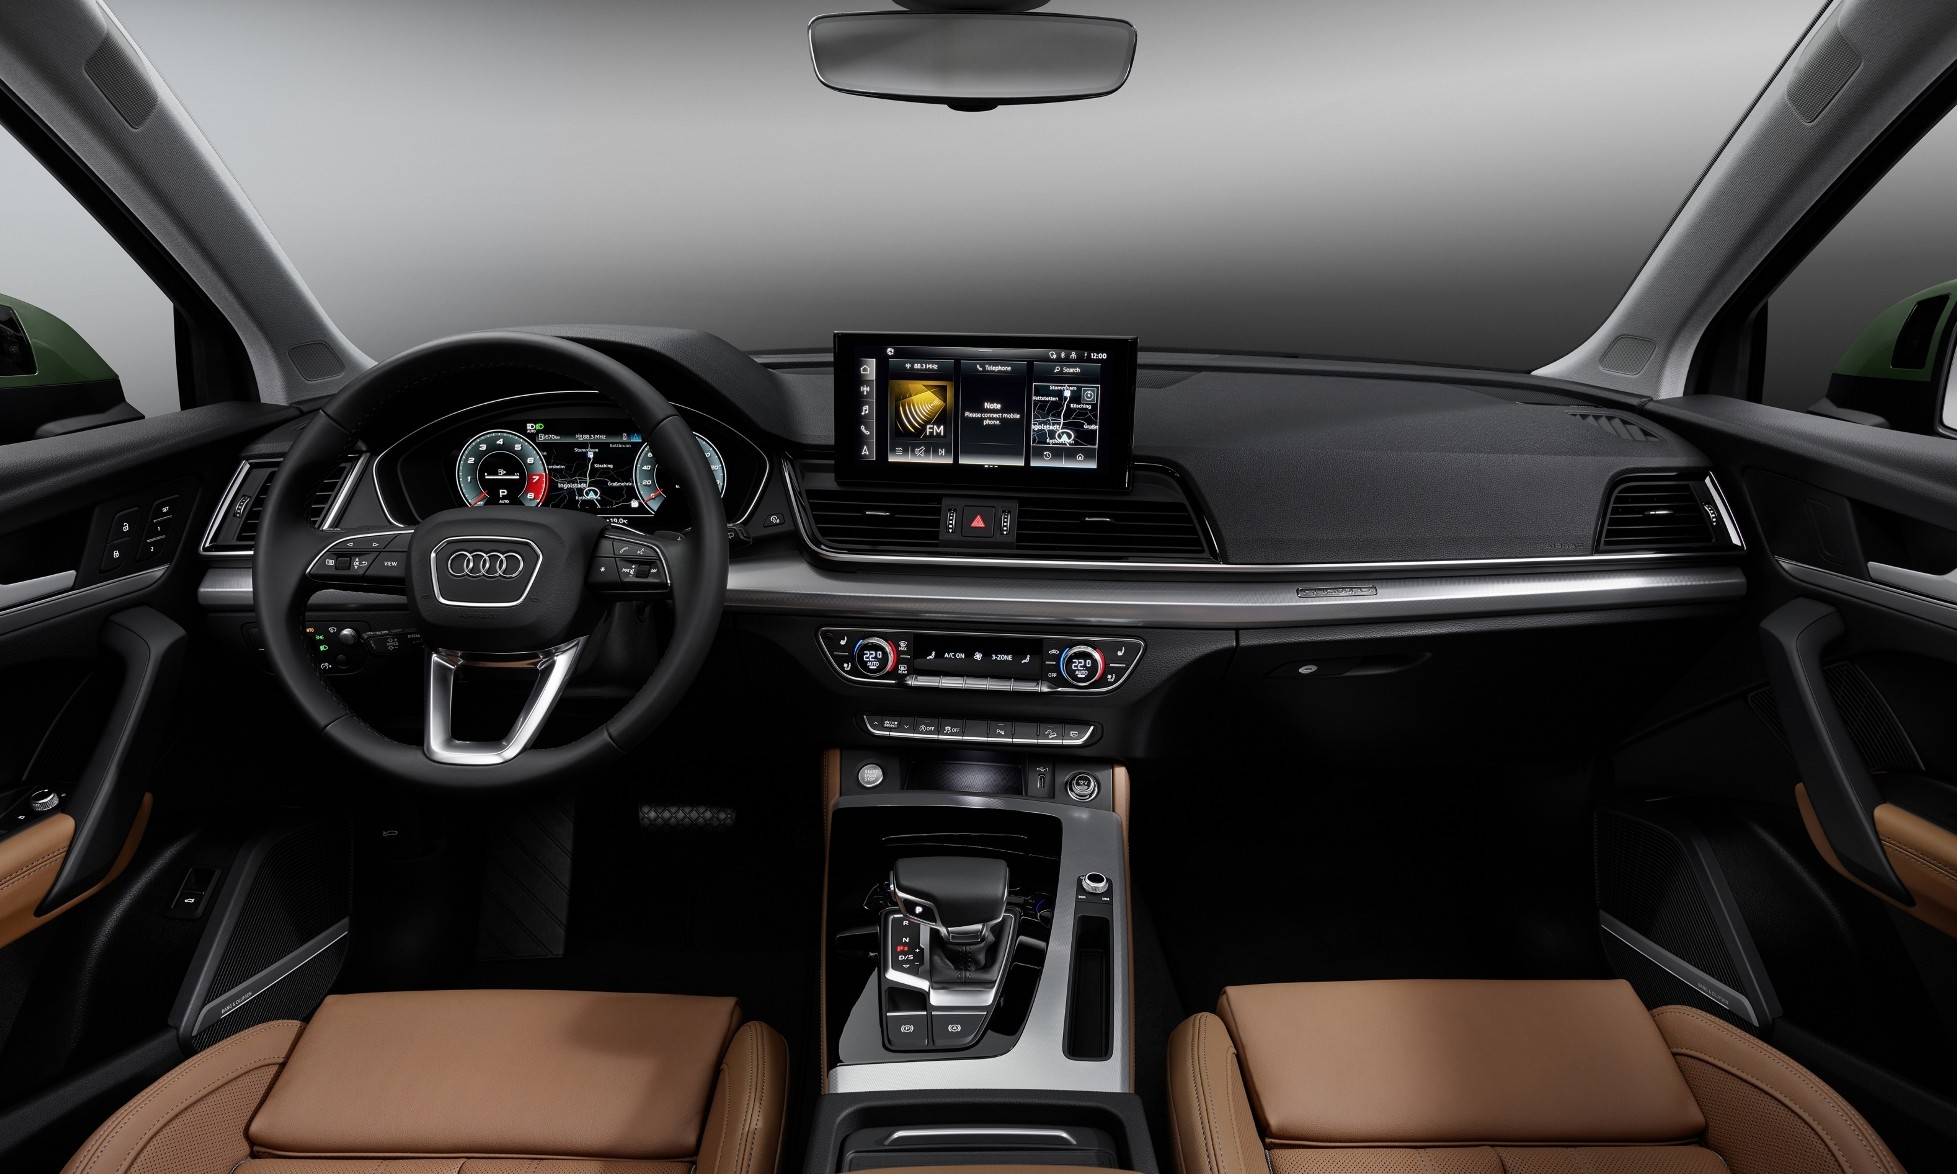 Facelifted Audi Q5 interior